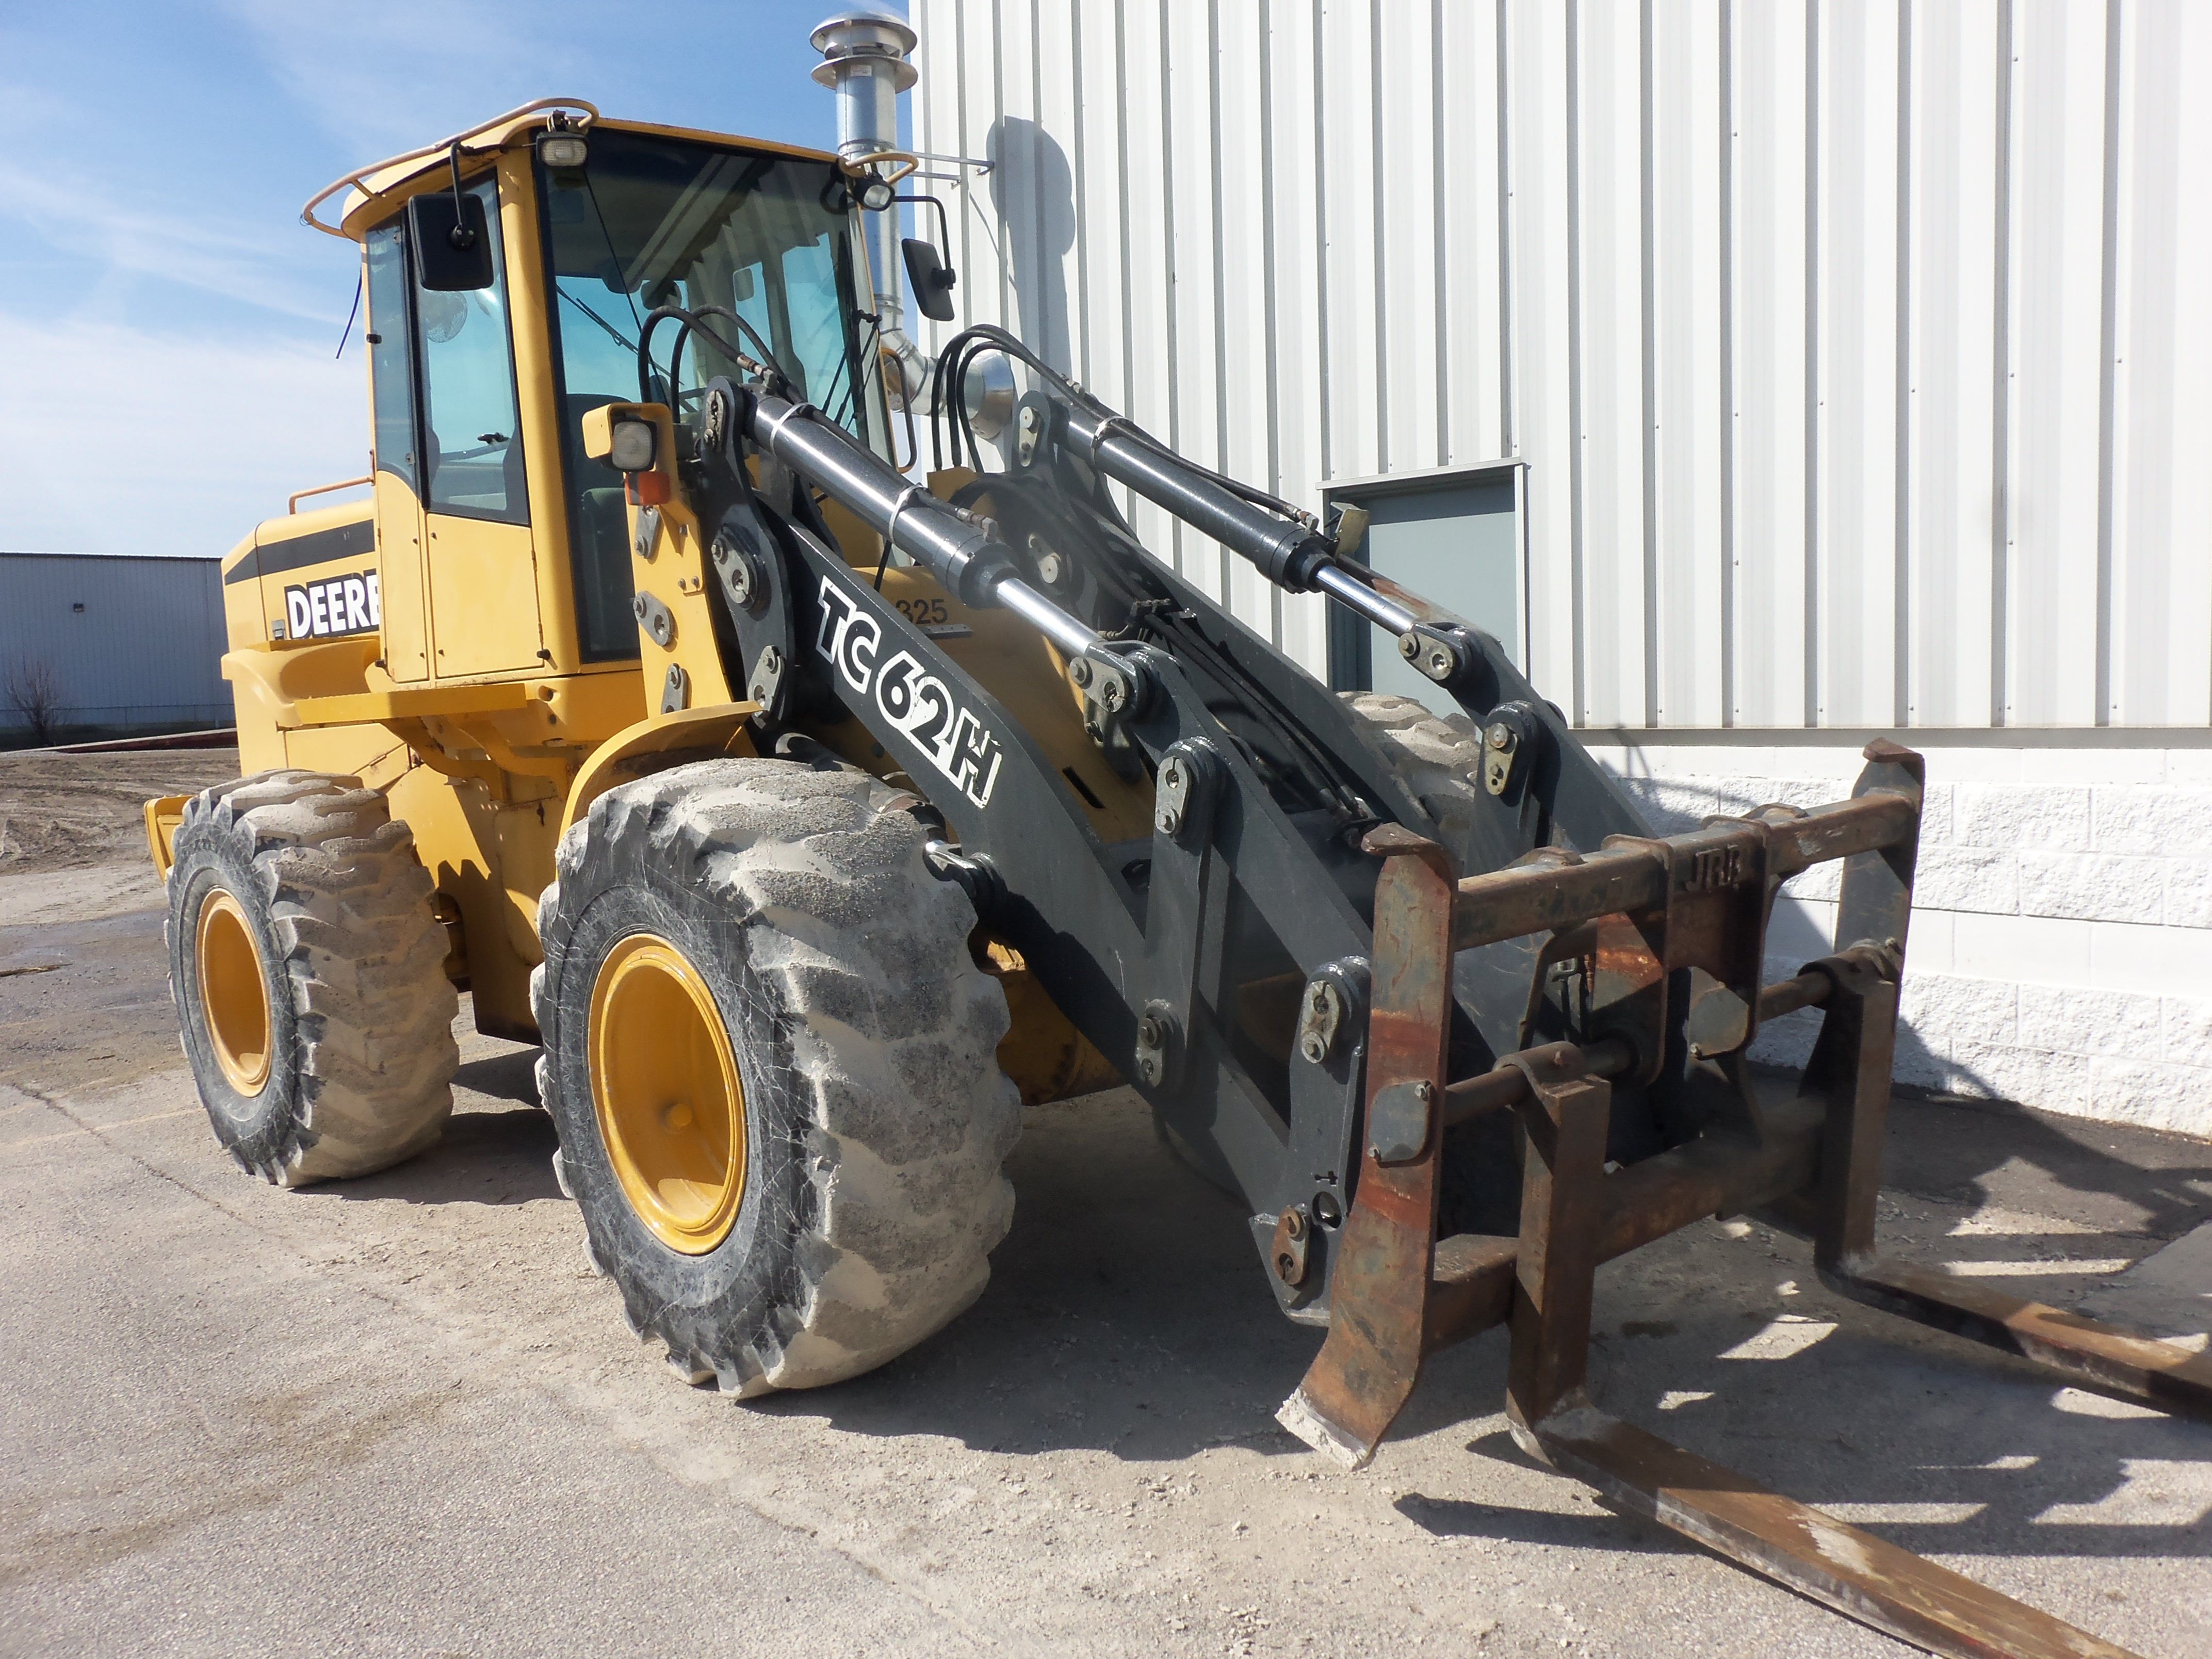 JOhn Deere TC62H Tool Carrier.172 gross,160 net hp from a turbocharged 414  cid diesel.29,651 lbs,10-10 hght,3.6 yards.This is based on the 624H wheel  loader